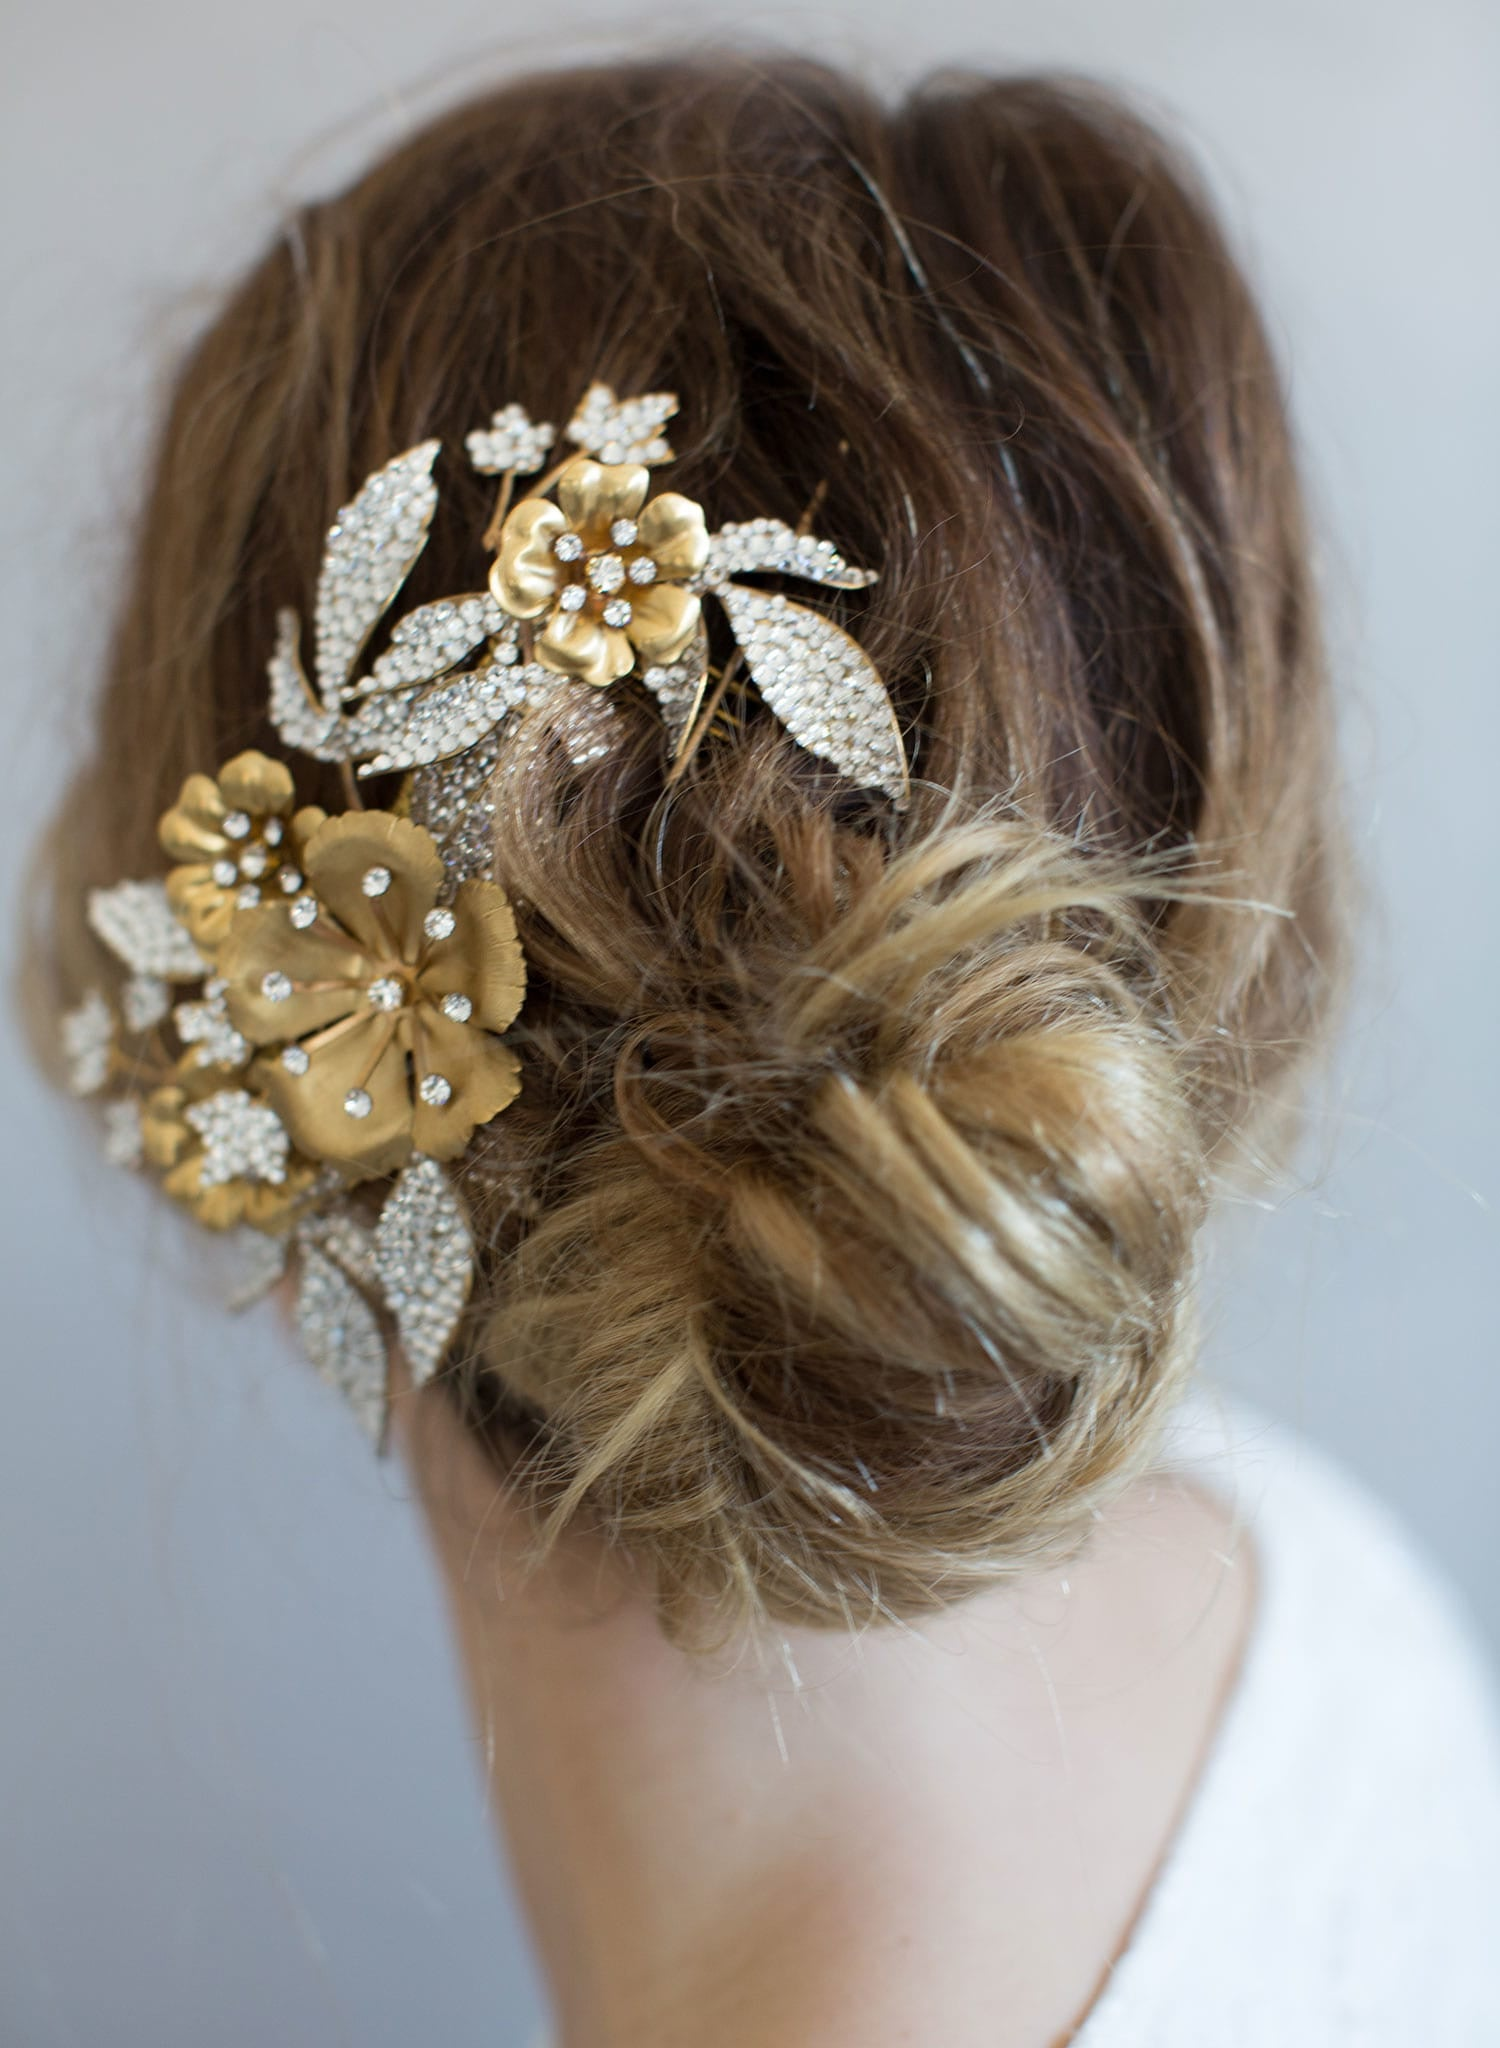 Br Bridal Headpieces Twigs And Honey -  rhinestone encrusted headpiece bridal headpiece nature inspired hair comb twigs and honey